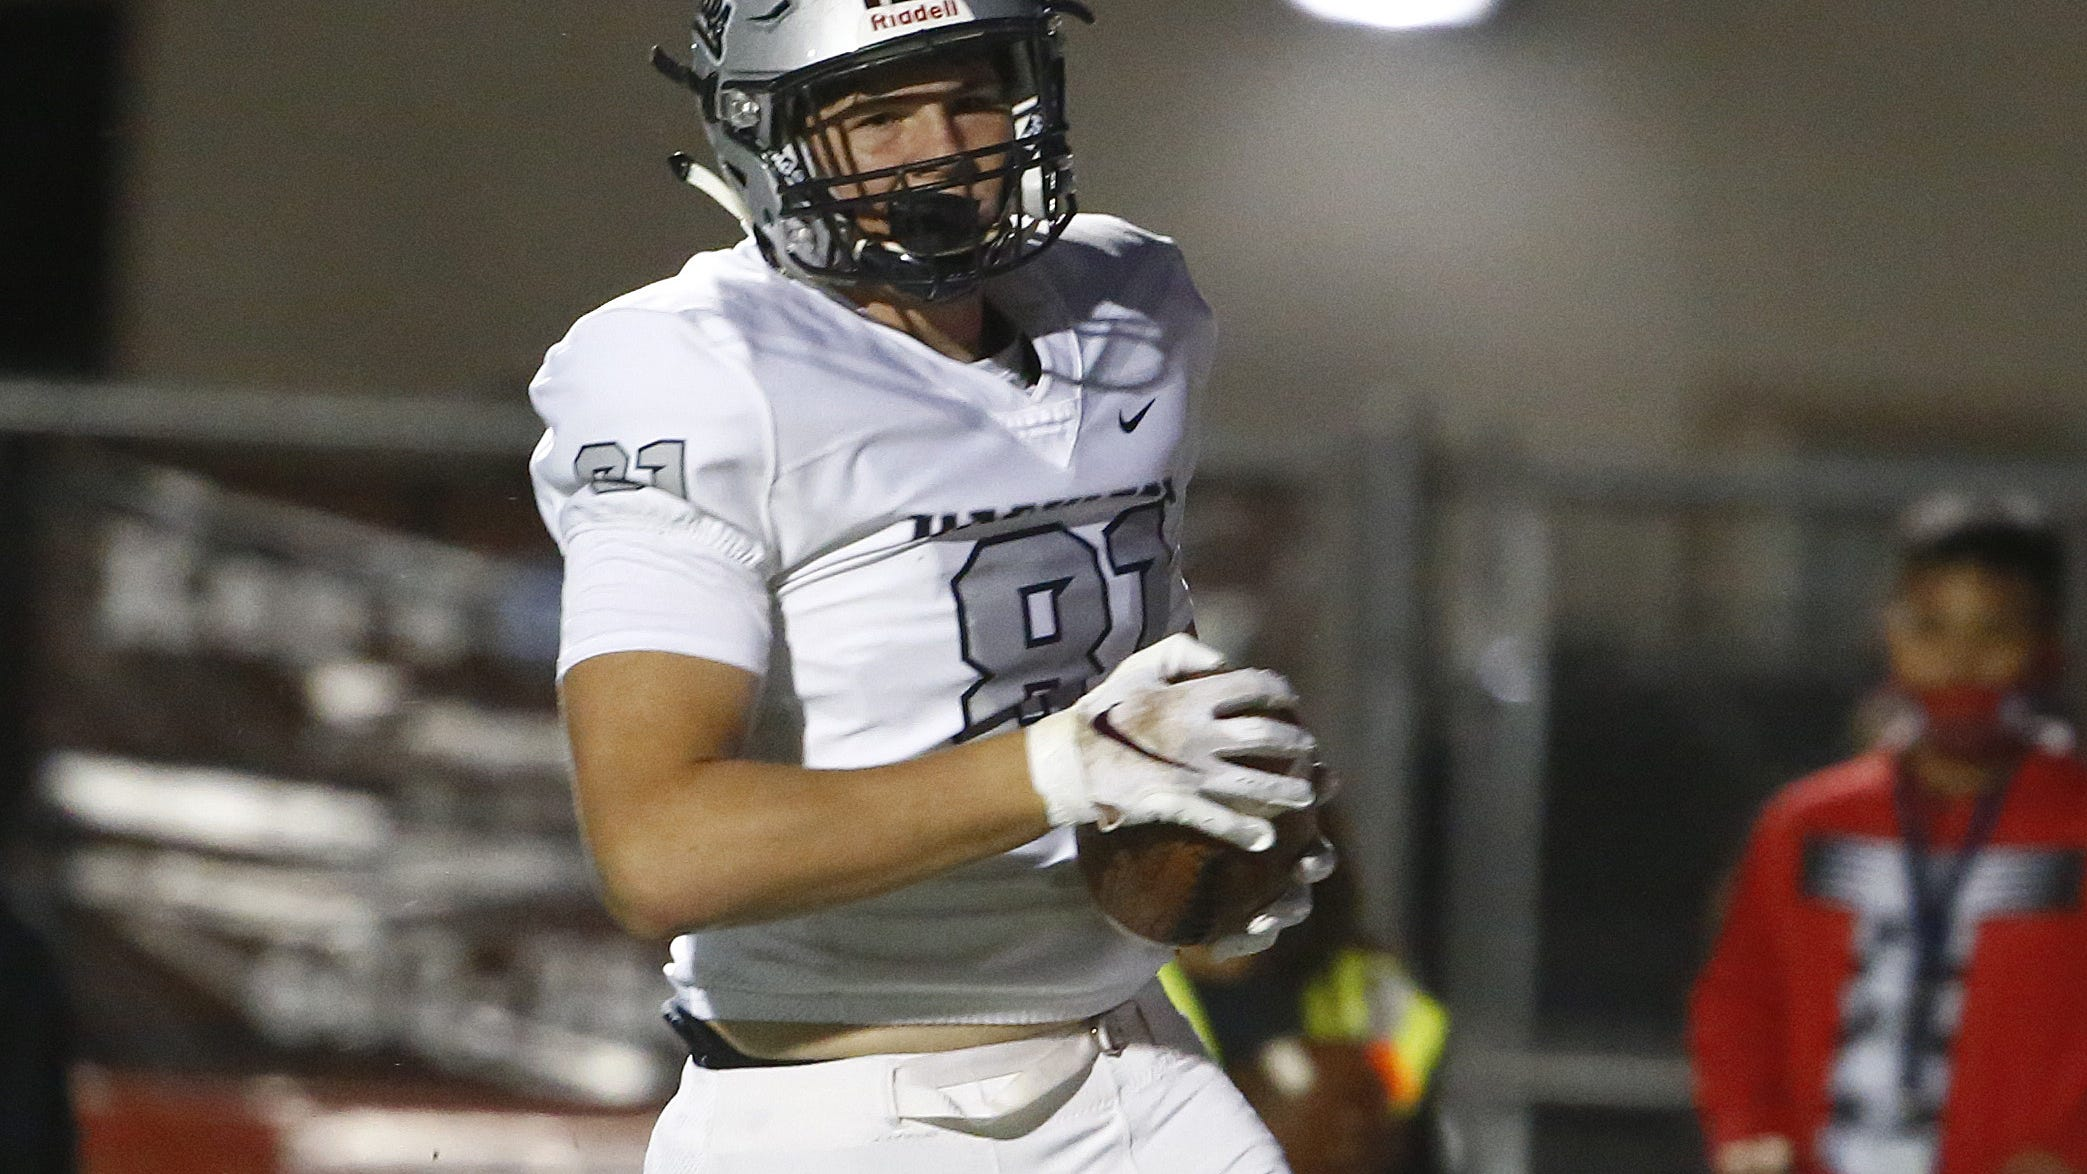 Michigan State earns commitment from 3-star TE Michael Masunas